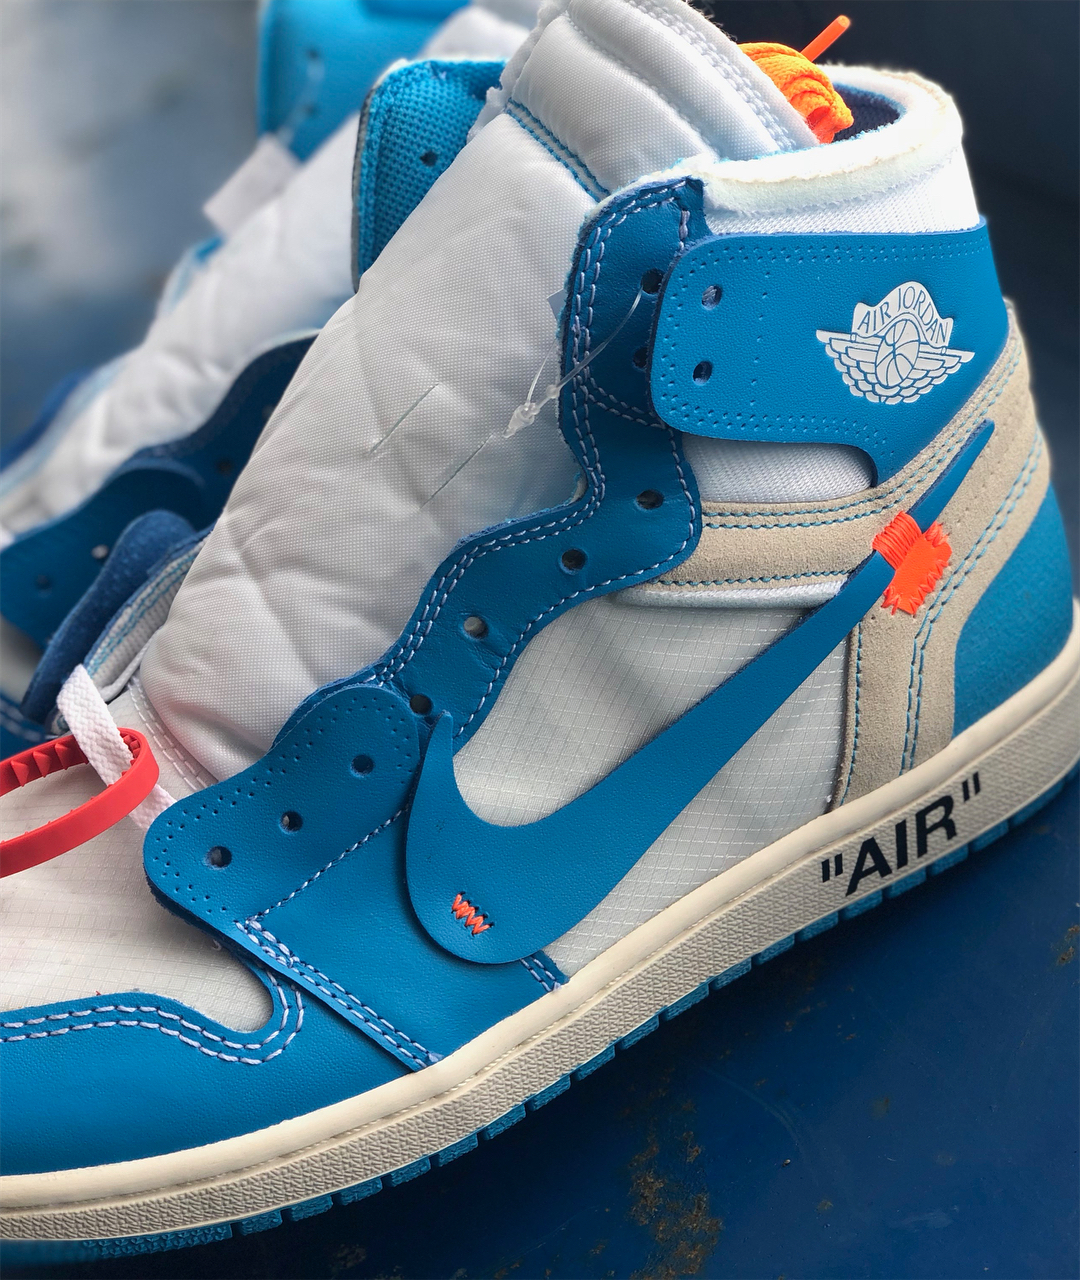 off-white-nike-air-jordan-1-dark-powder-blue-unc-aq0818-148-release-20180609